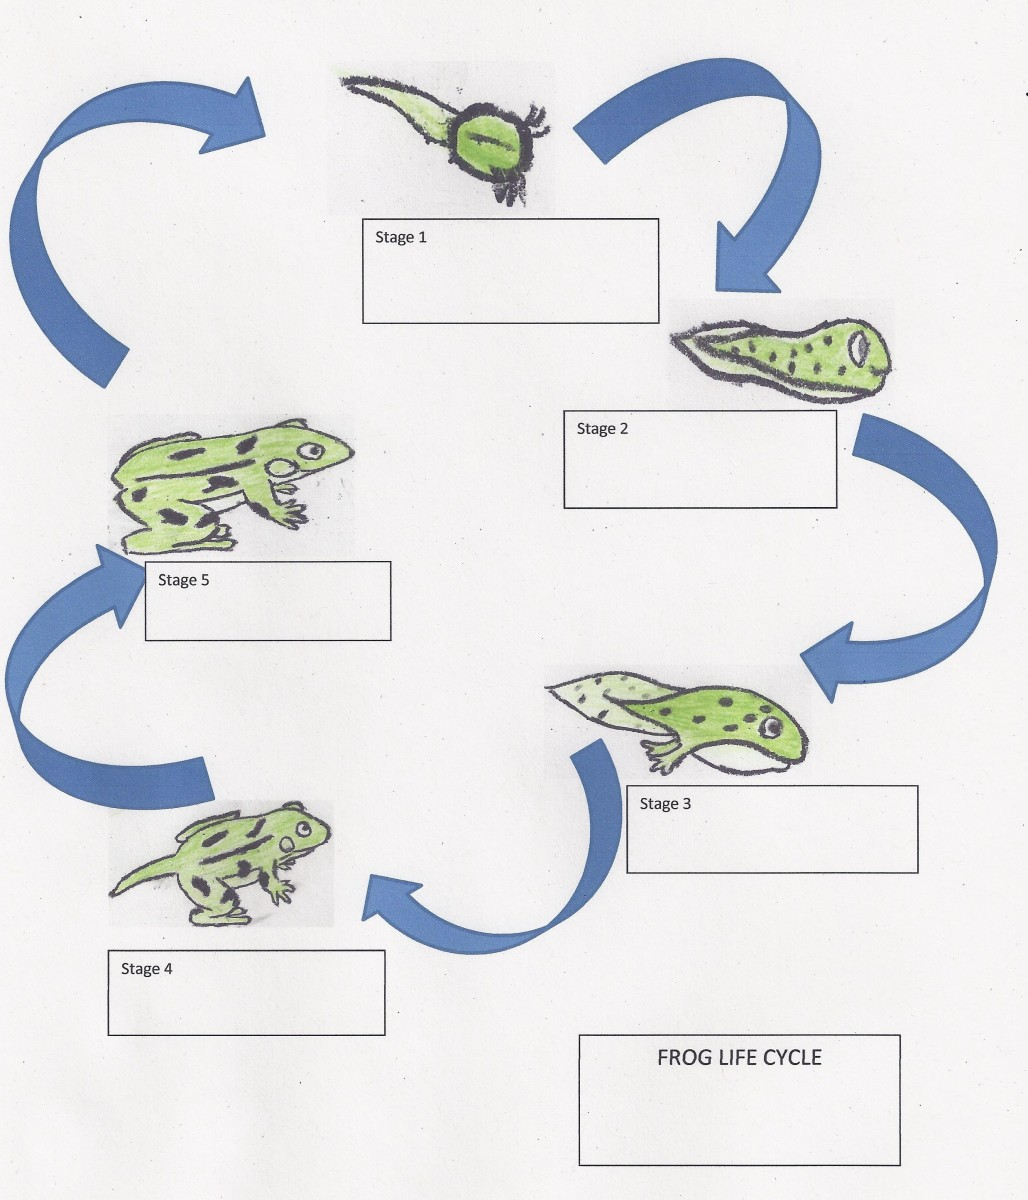 Life Cycle Of A Frog Lesson Plan For Elementary Students Owlcation